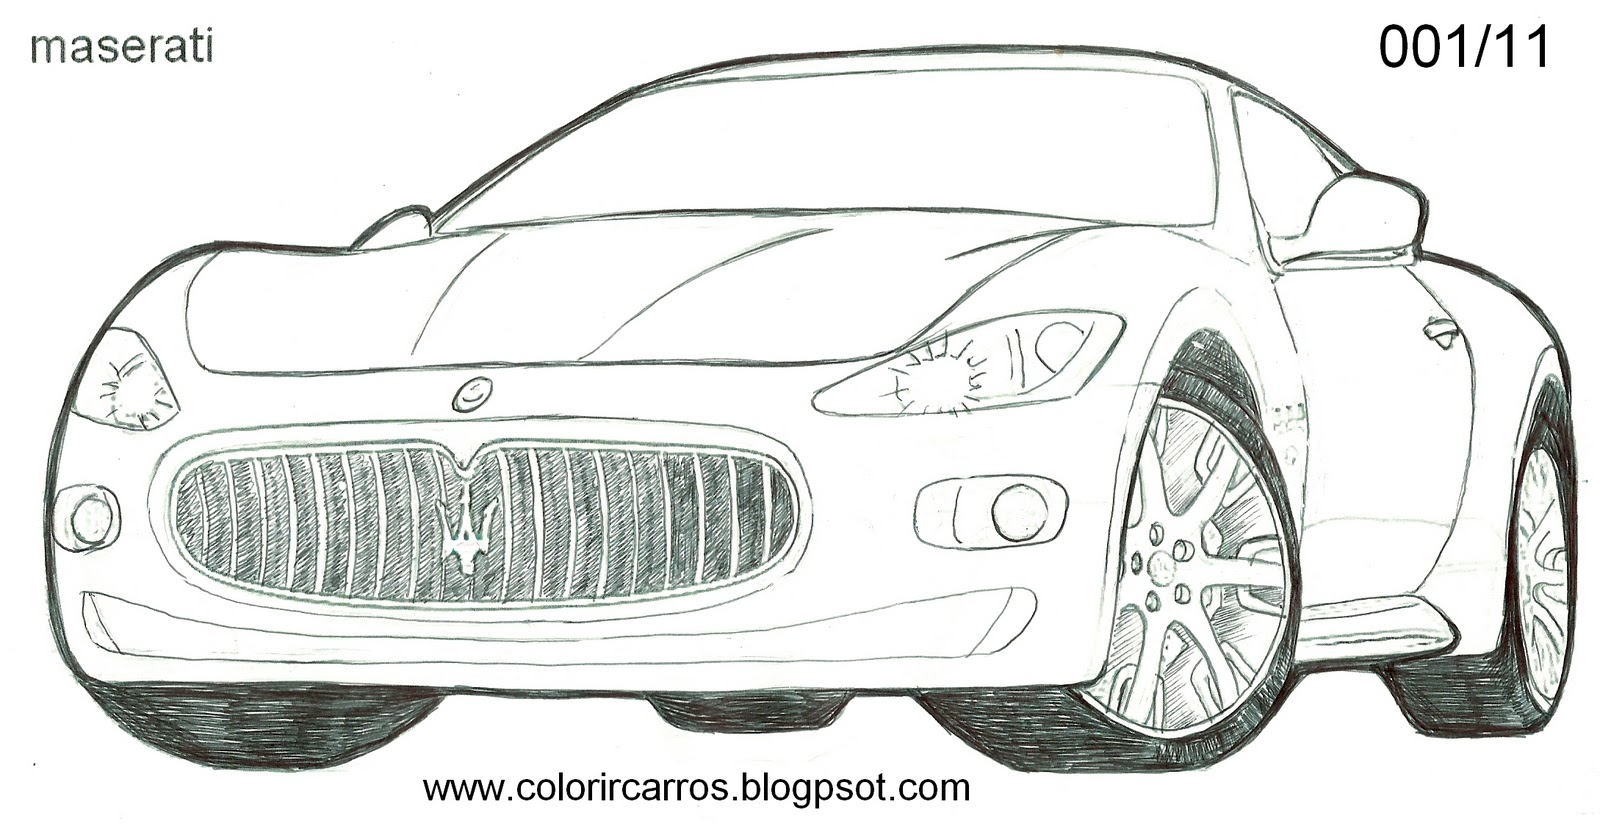 Train Coloring Page 18 likewise Printable Baseball Bat And Glove Coloring Pages moreover Maserati Gran Turismo together with Drawings also Details. on sports car coloring pages